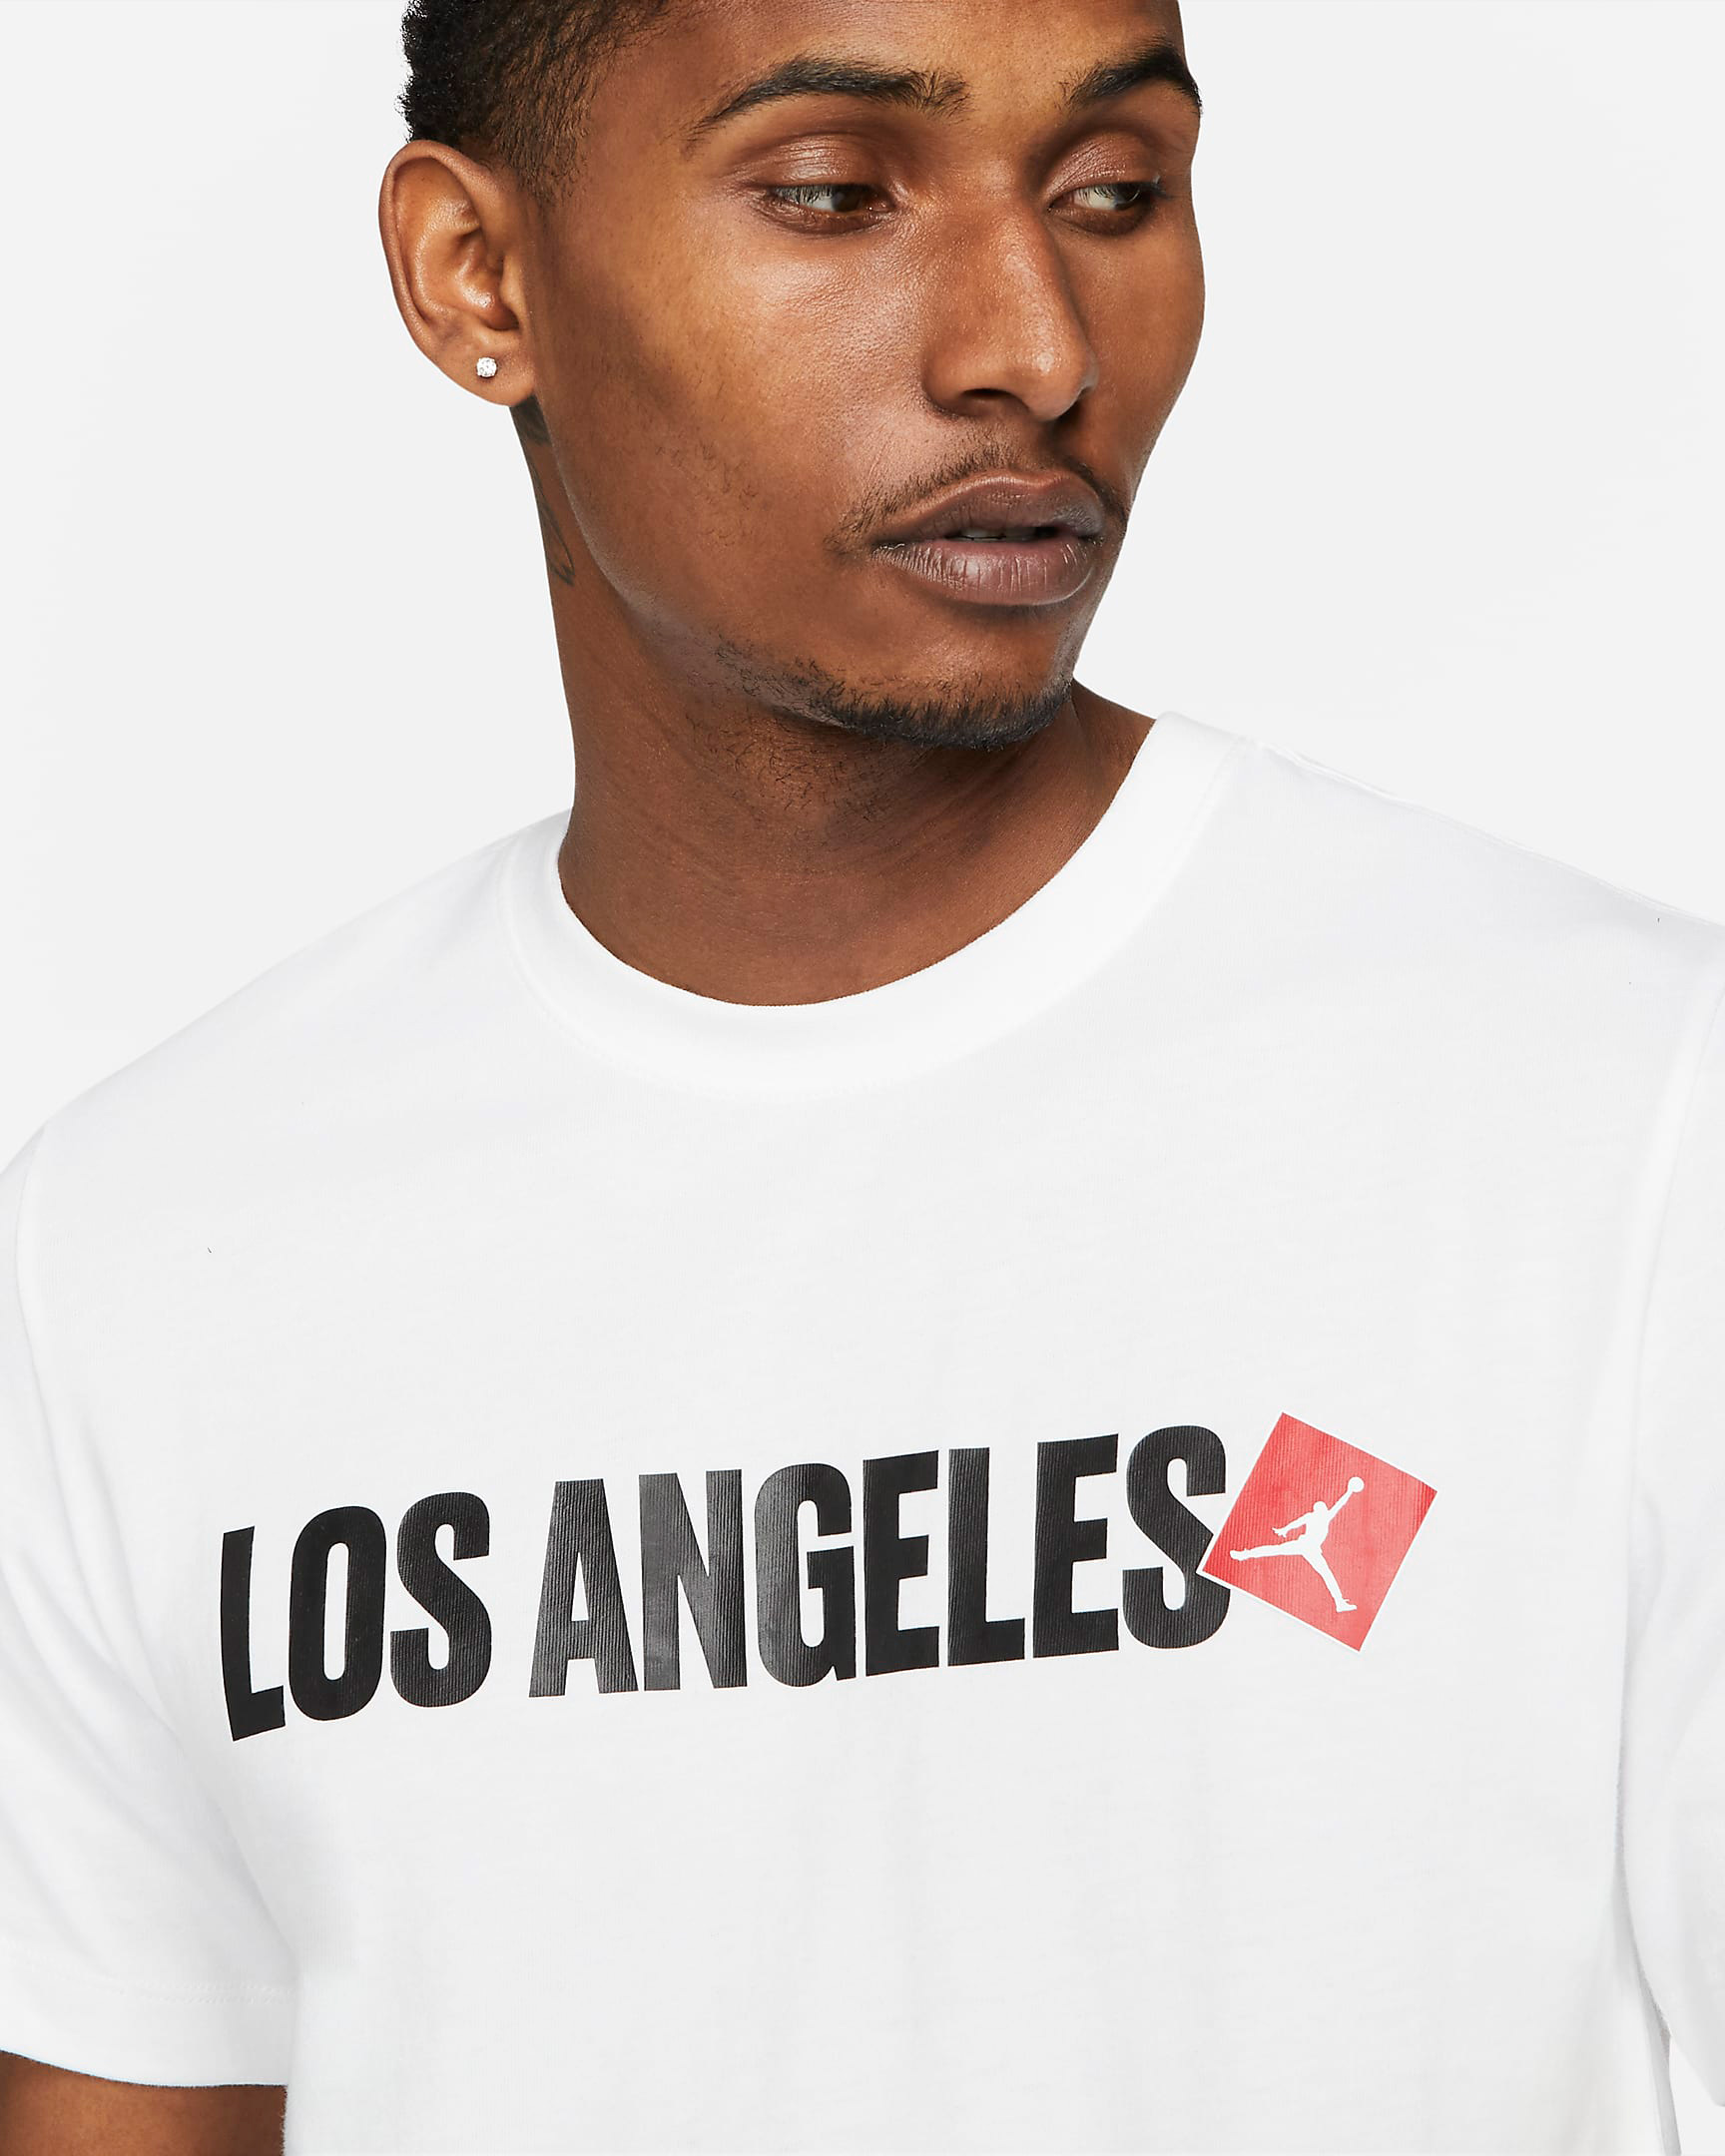 jordan-los-angeles-shirt-white-1